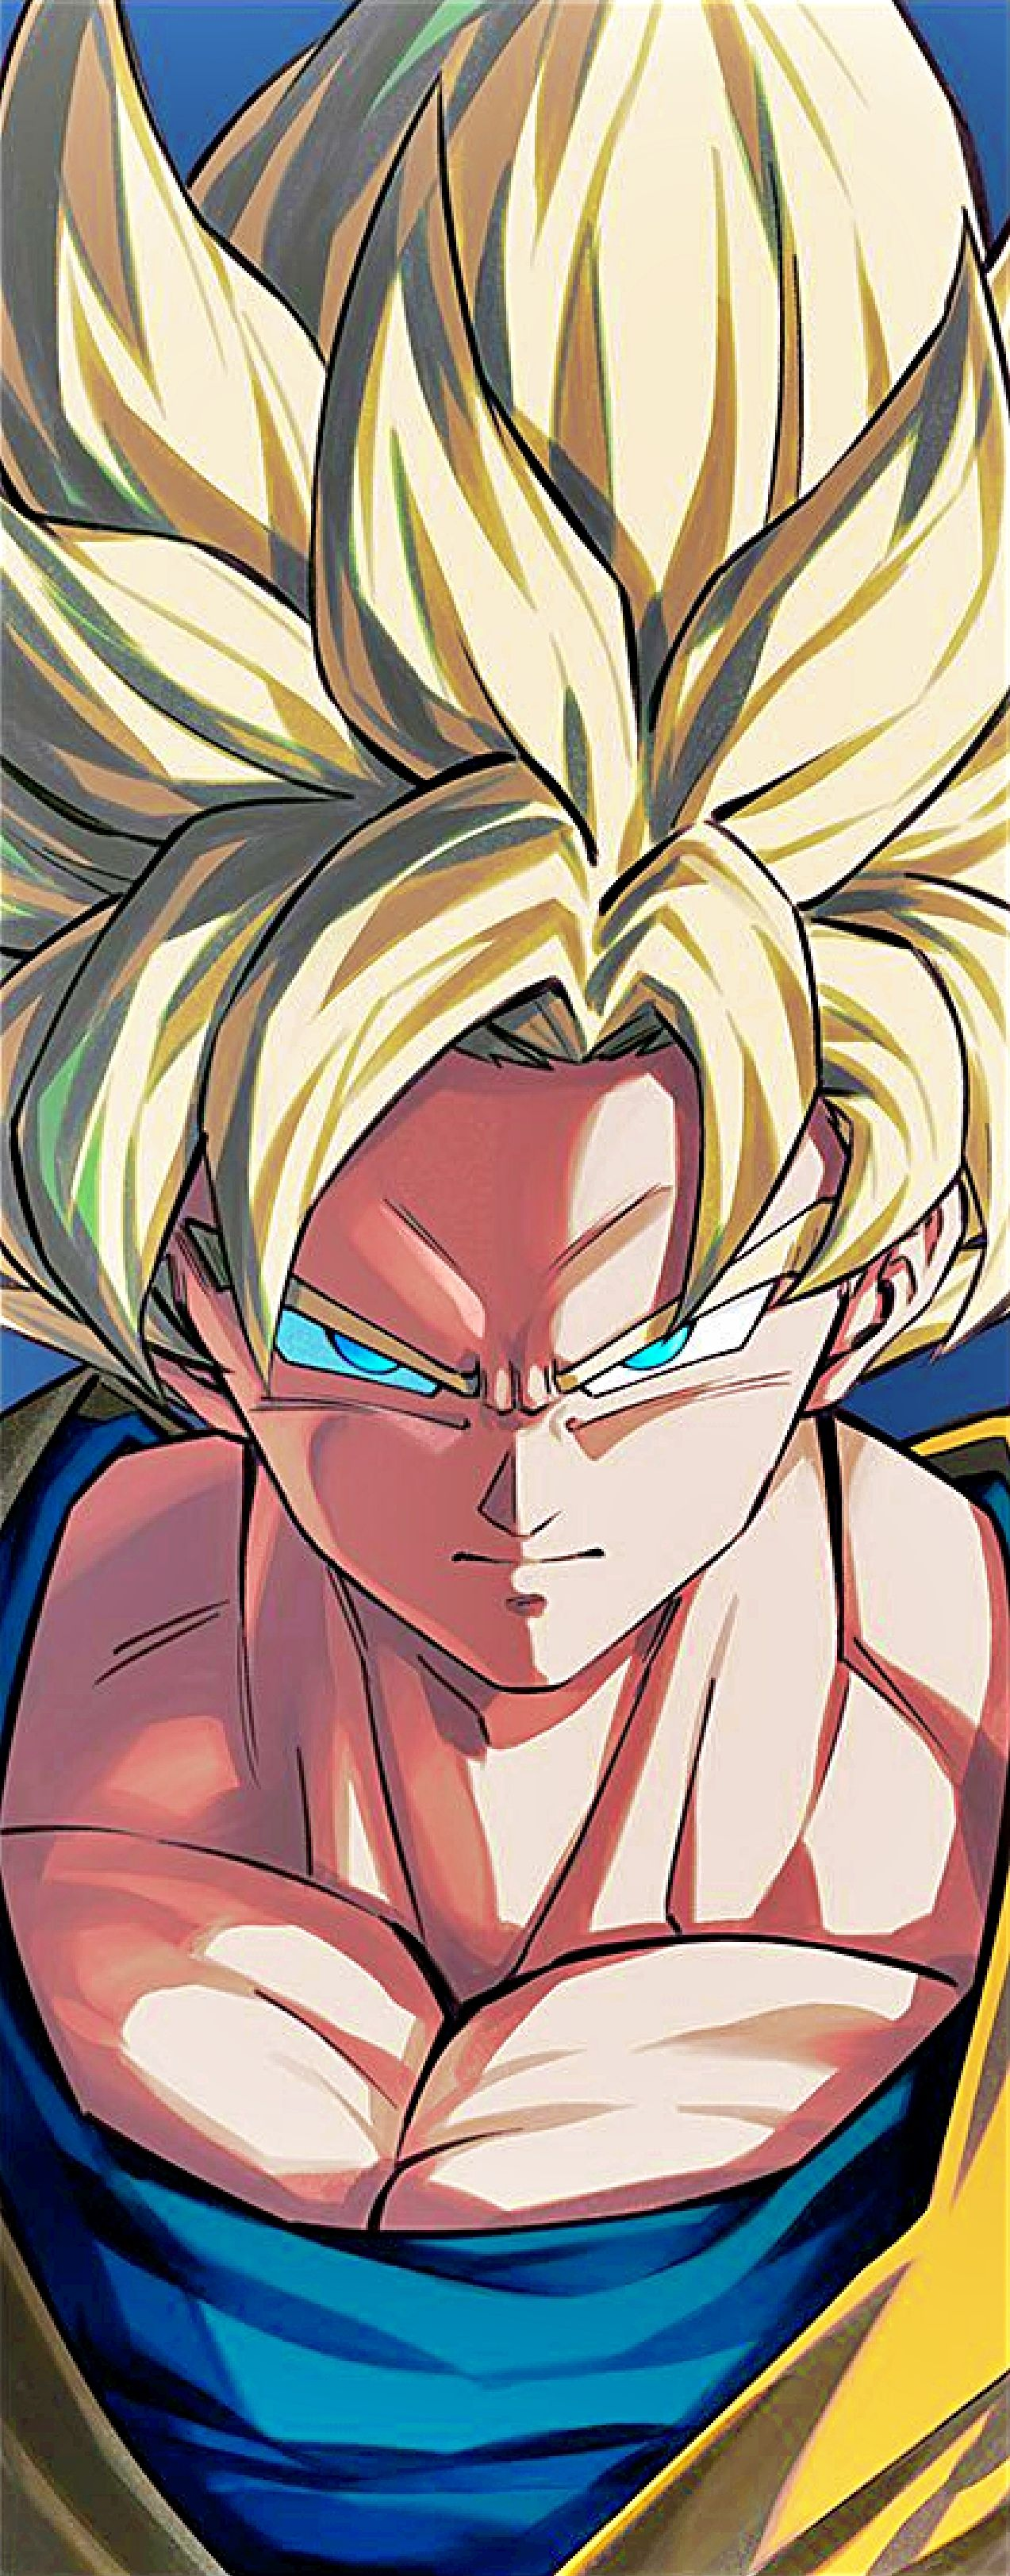 BY Mattari illust ╳ JUST SAY GG TO YOUR LIFE   Dragonball z ...